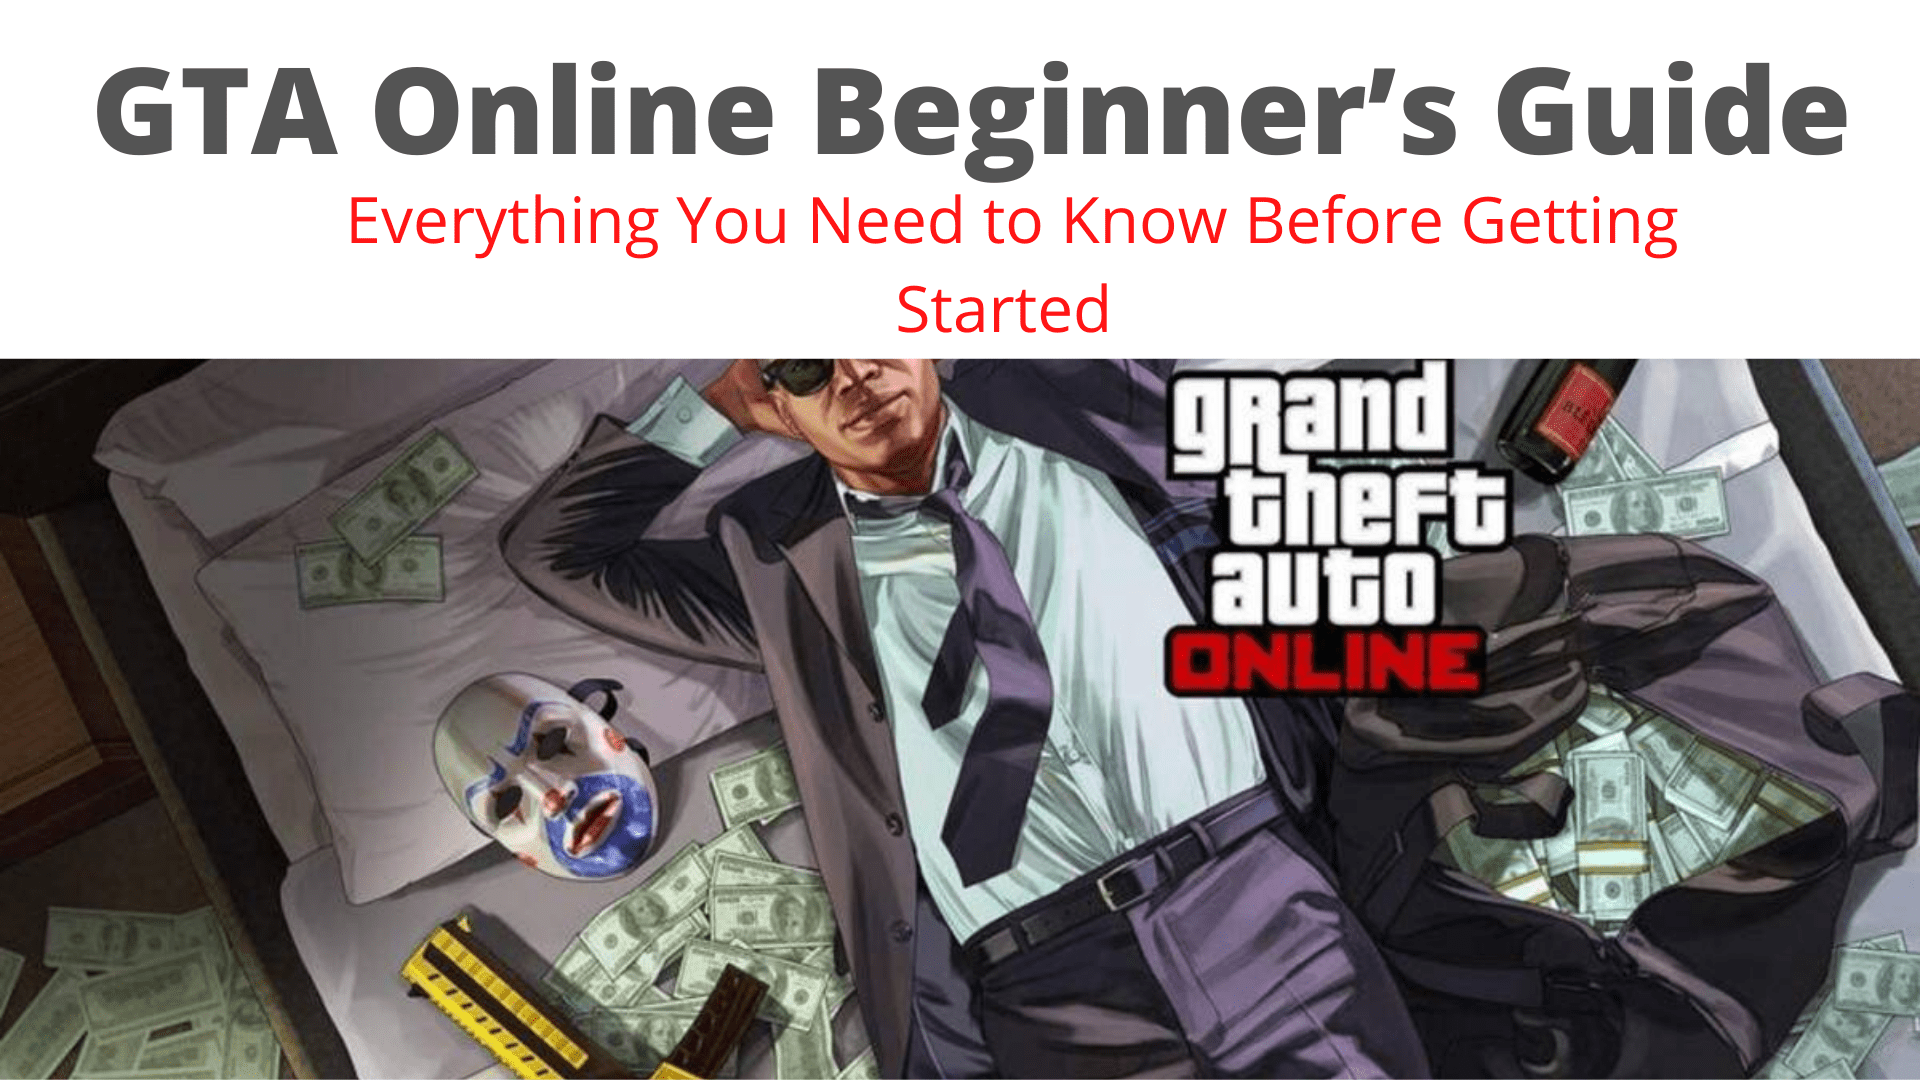 GTA Online Beginner's Guide